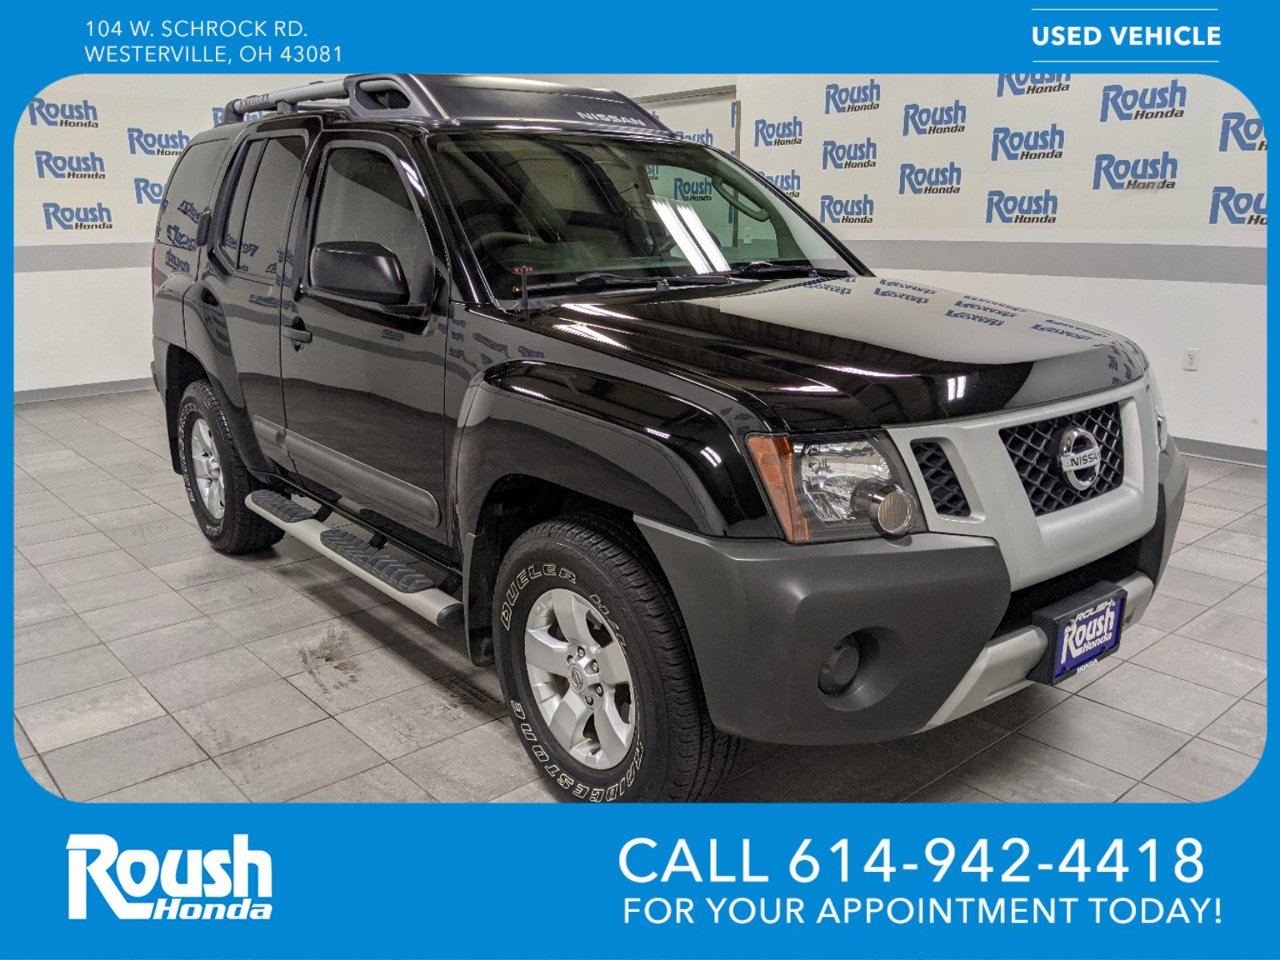 Used 2012 Nissan Xterra in Westerville, OH